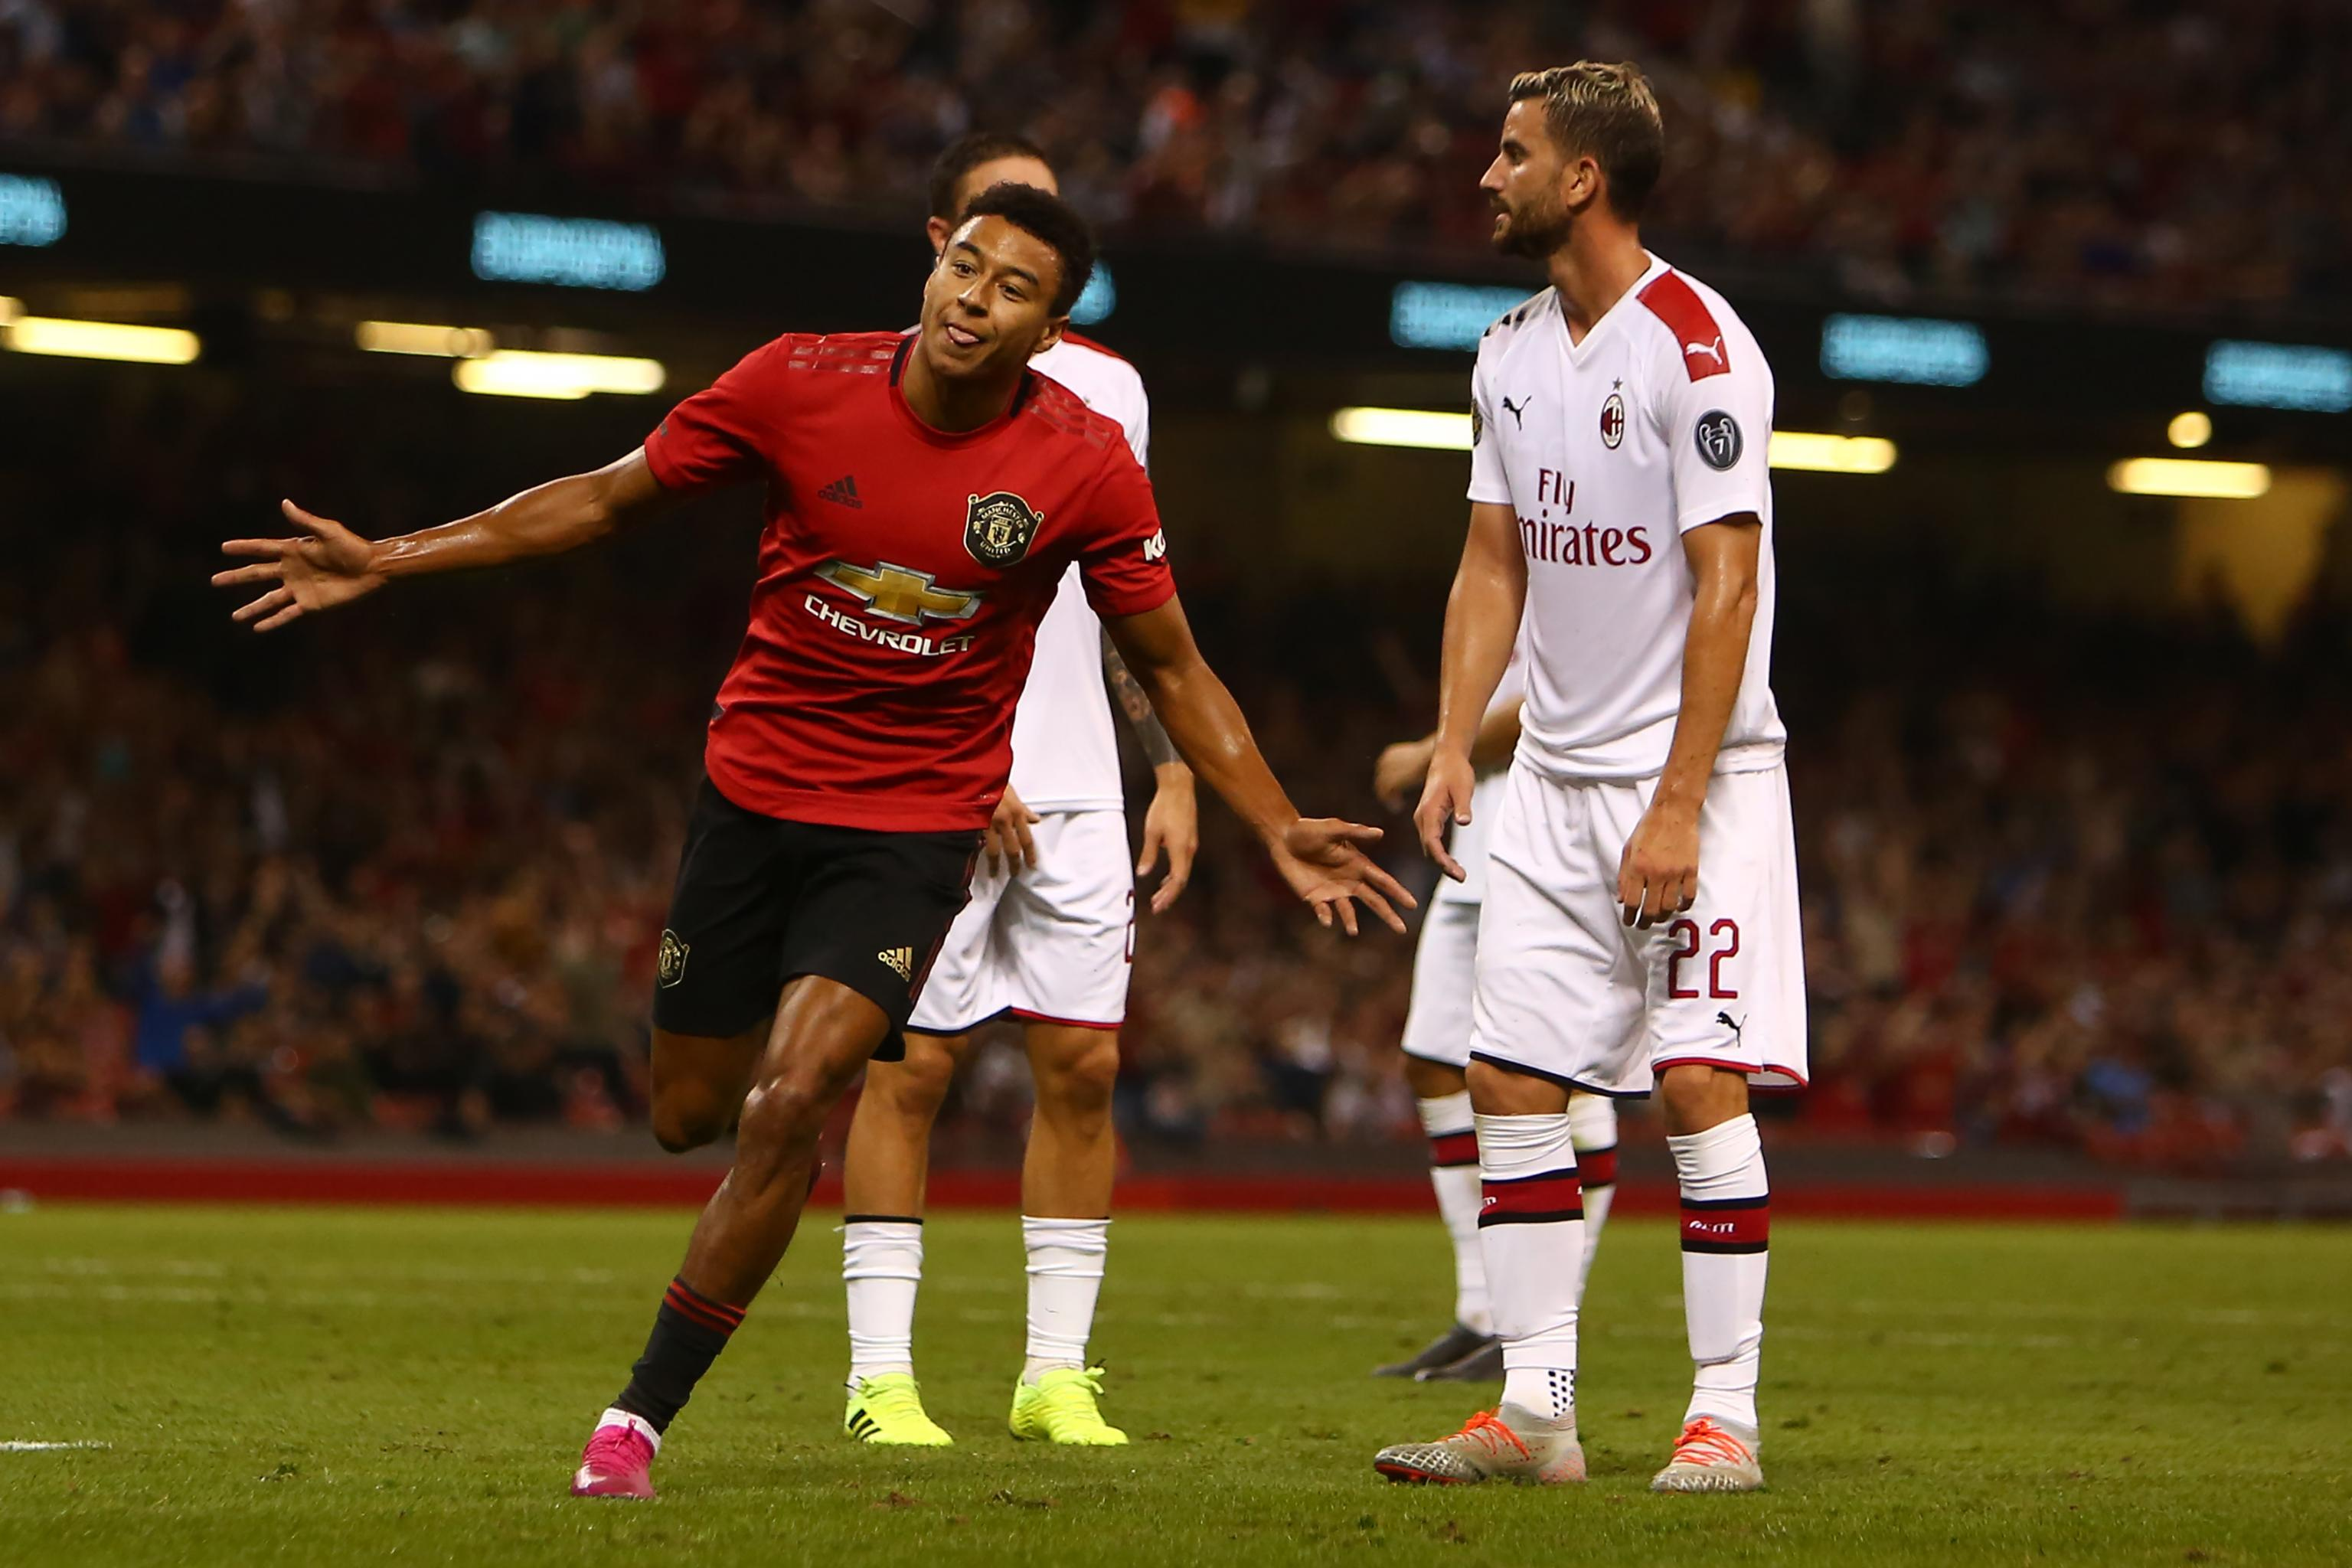 Manchester United Beat Ac Milan On Penalties After Drawing Final 2019 Icc Match Bleacher Report Latest News Videos And Highlights